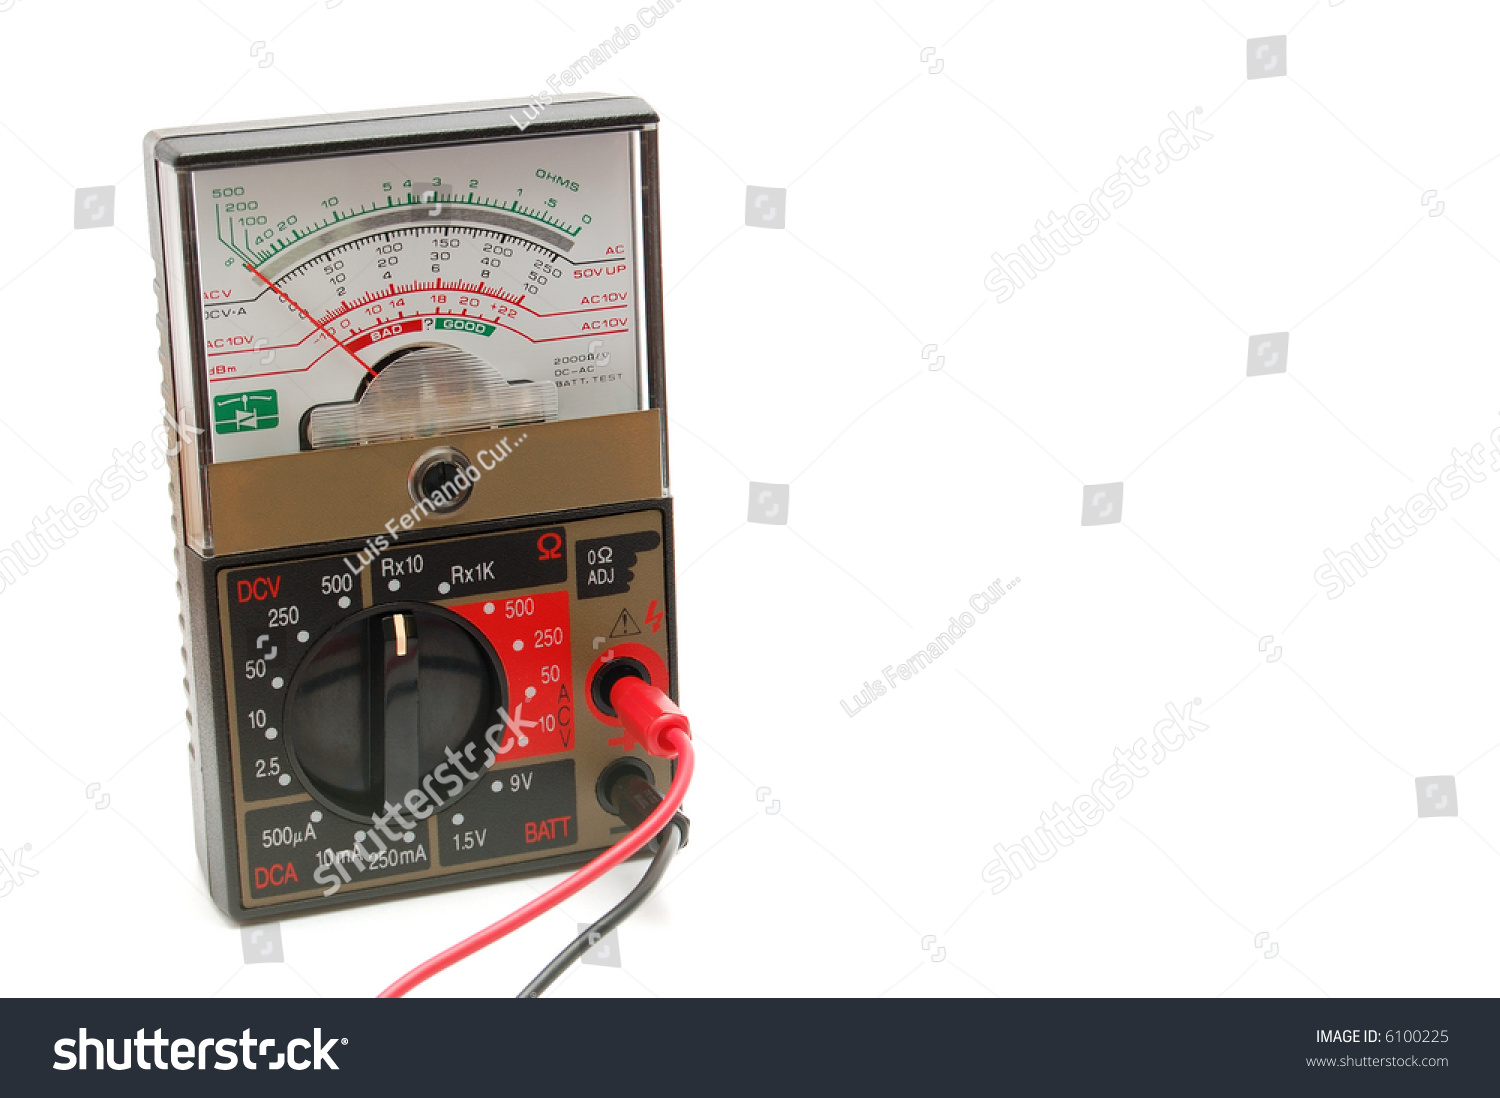 Analog Meter Background : An analog multimeter on a white background stock photo